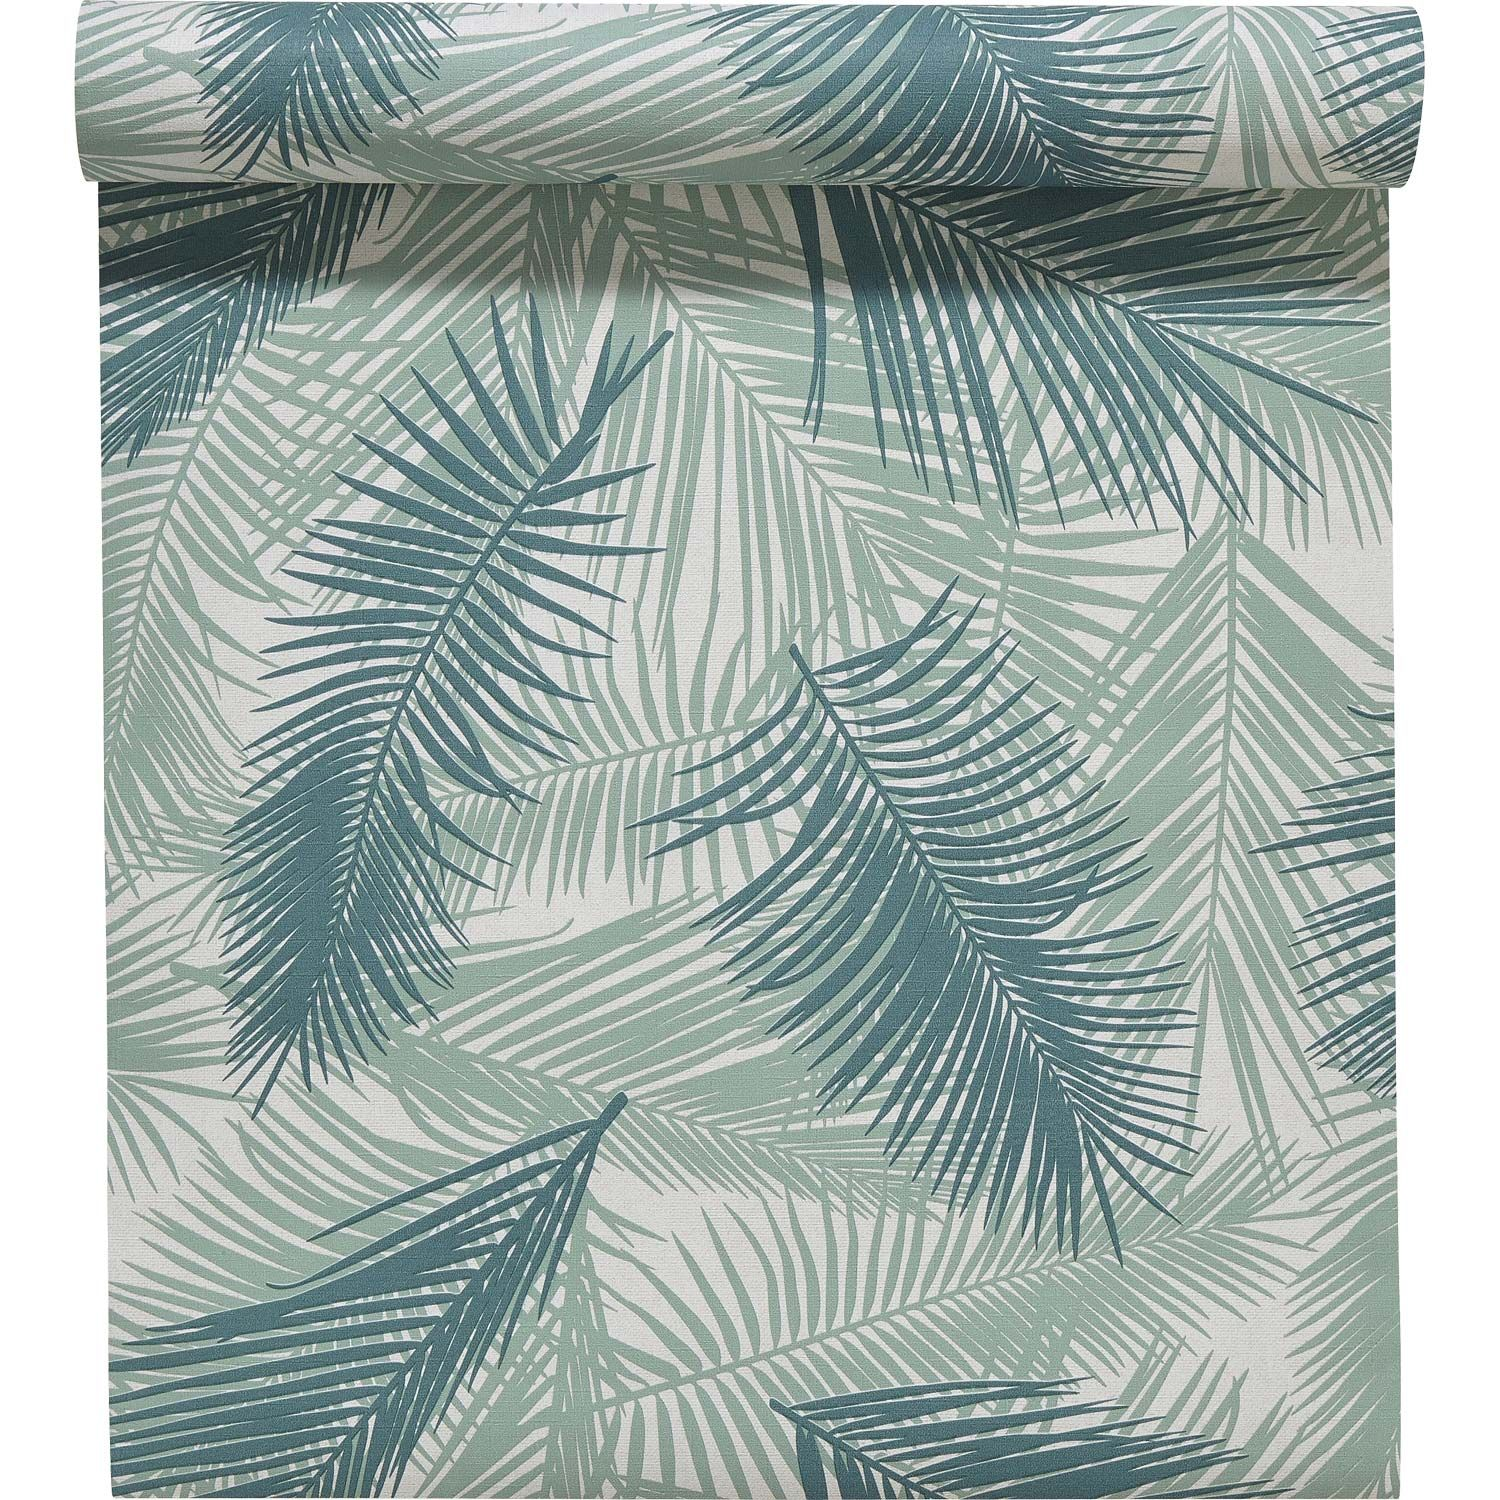 papier peint intiss feuille de palme vert leroy merlin tendance tropical jungle. Black Bedroom Furniture Sets. Home Design Ideas